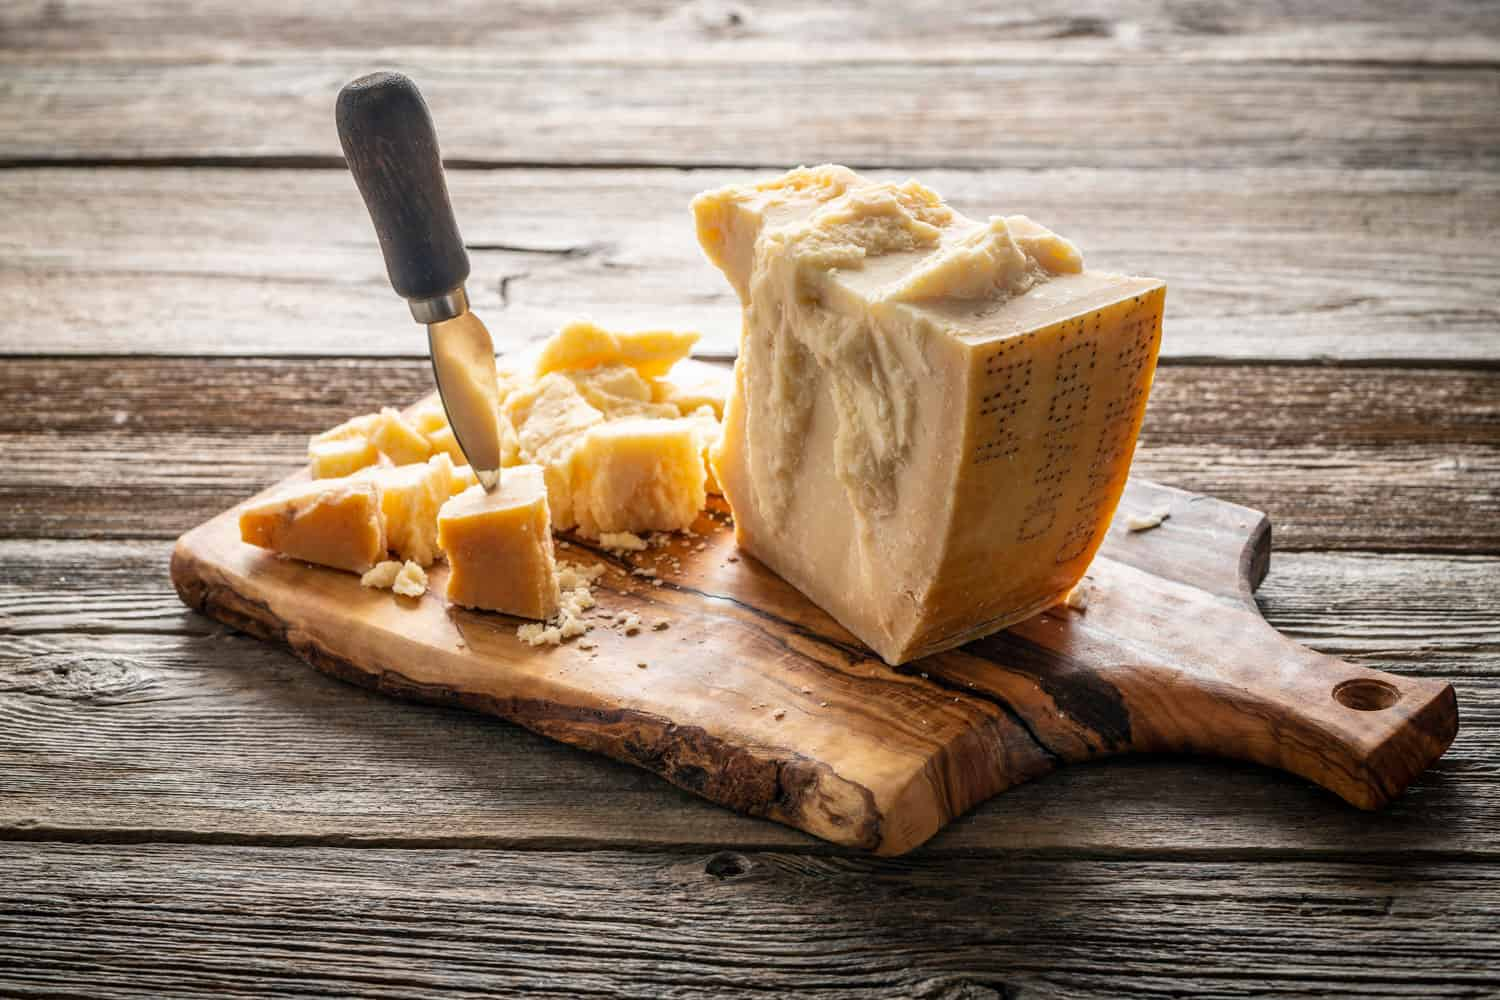 Old Cheddar cheese, irregular shaped big and small pieces, placed on a wooden cheeseboard